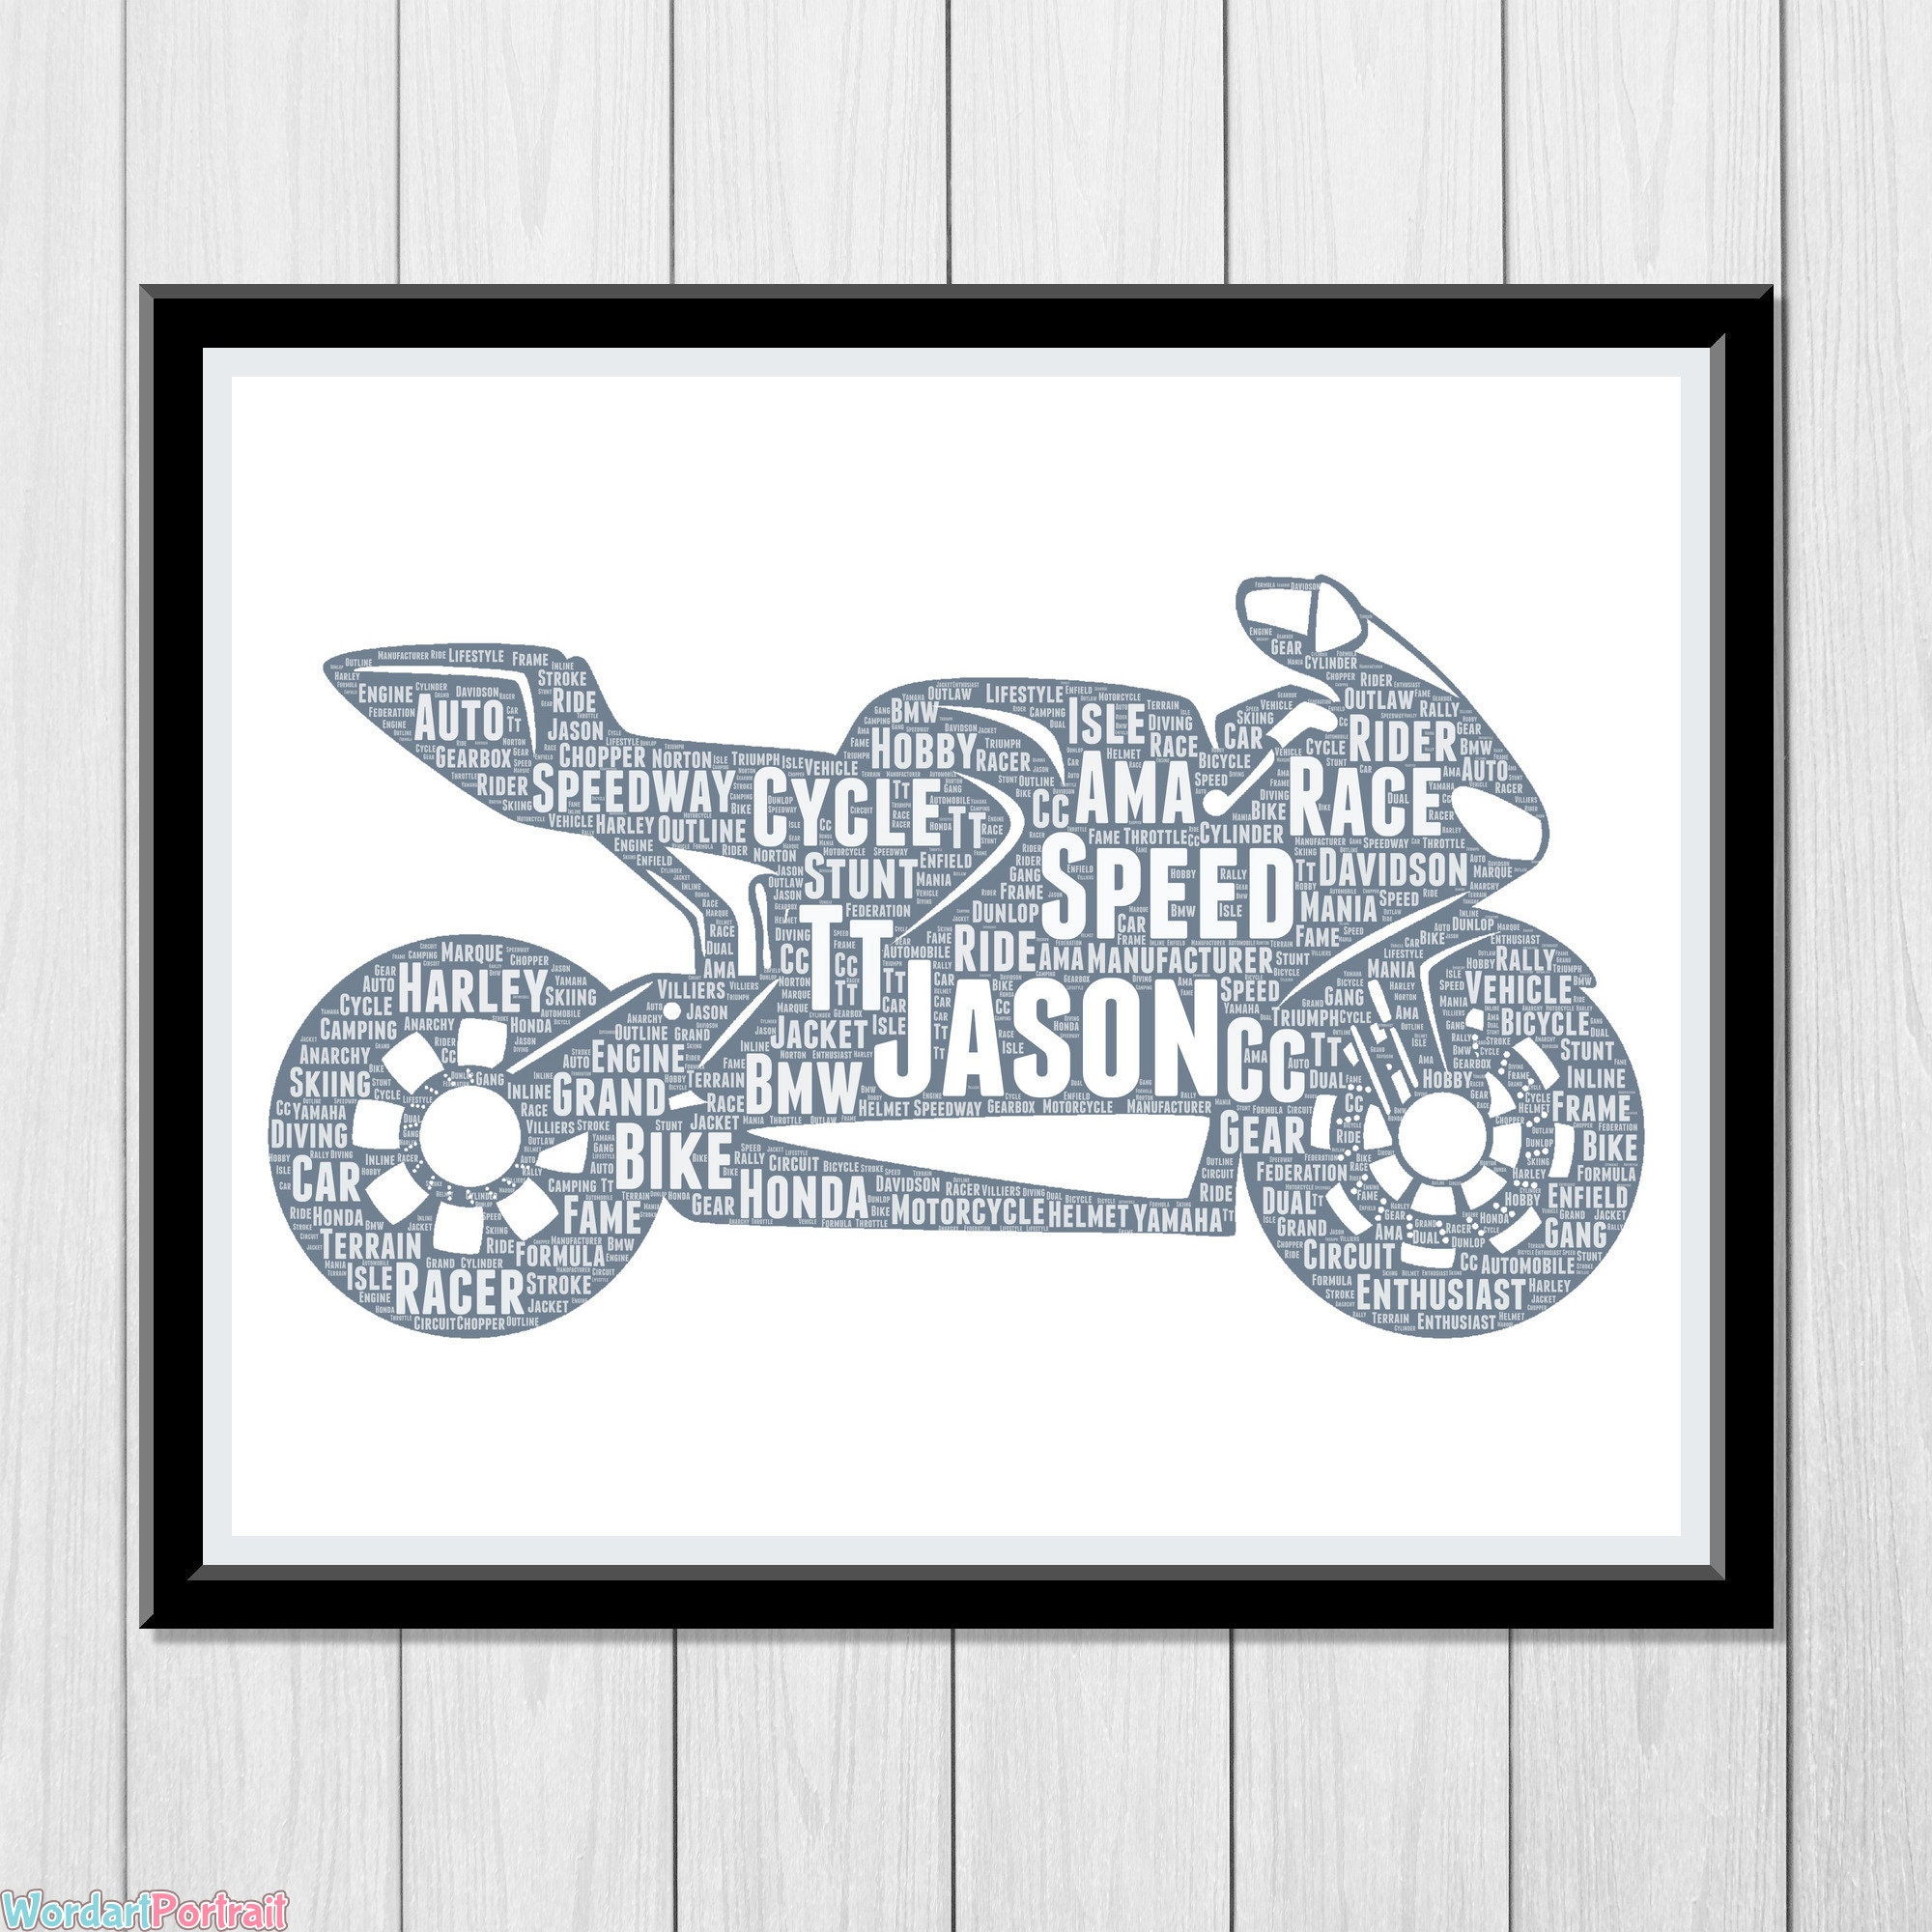 Personalized Motorcycle Gift - Biker Wall Art Print - Dad Gifts For Him - Motorbike Rider Racer Gift Motorcycle Club Ride Word Art Print Wordle